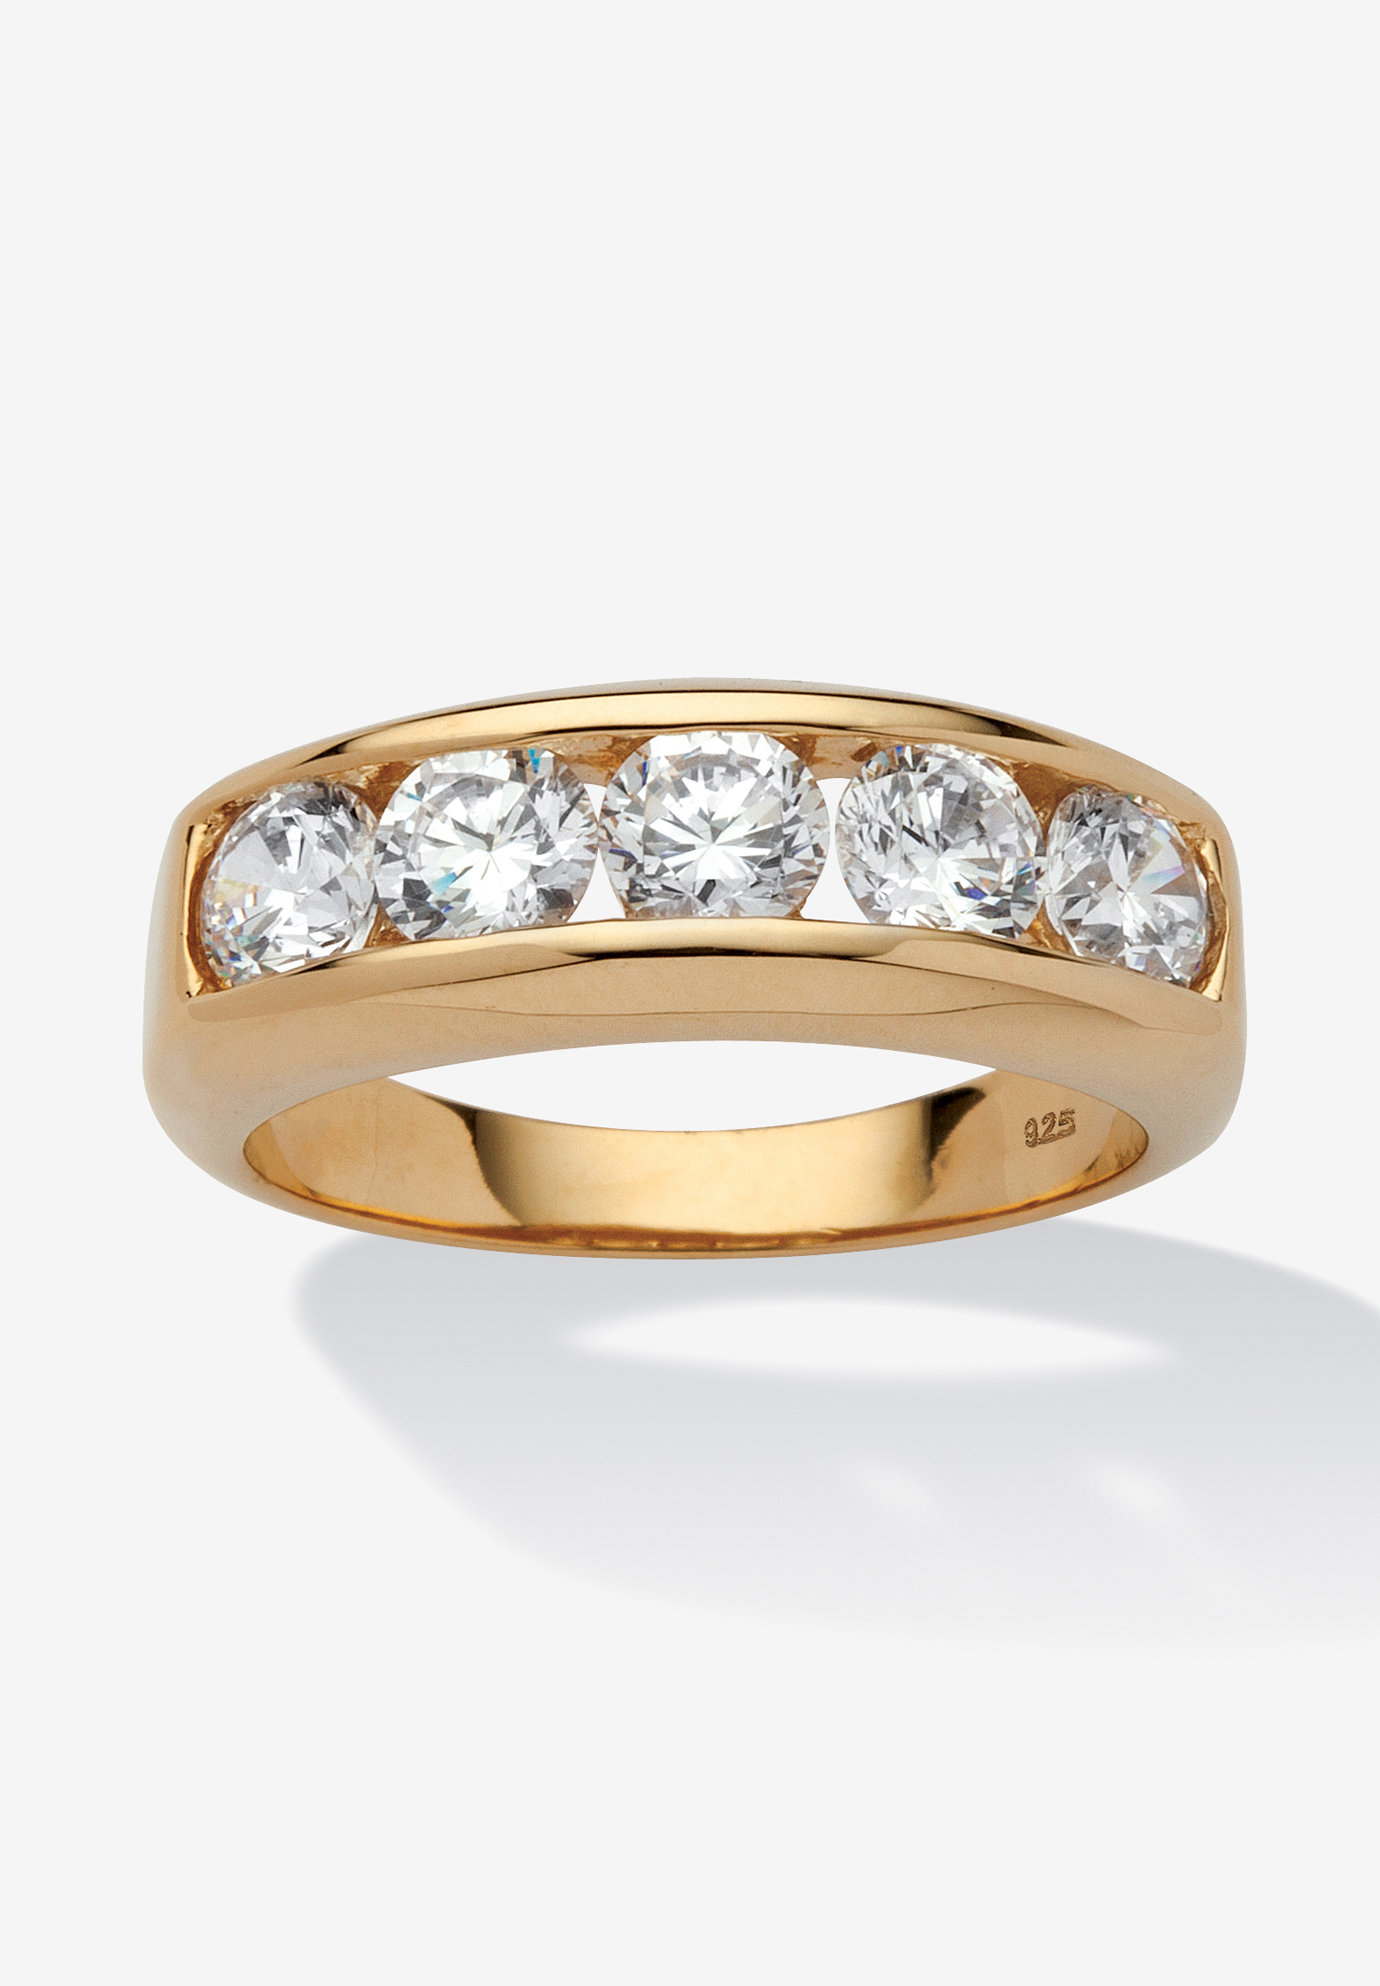 18K Yellow Gold over Sterling Silver Cubic Zirconia Wedding Band,